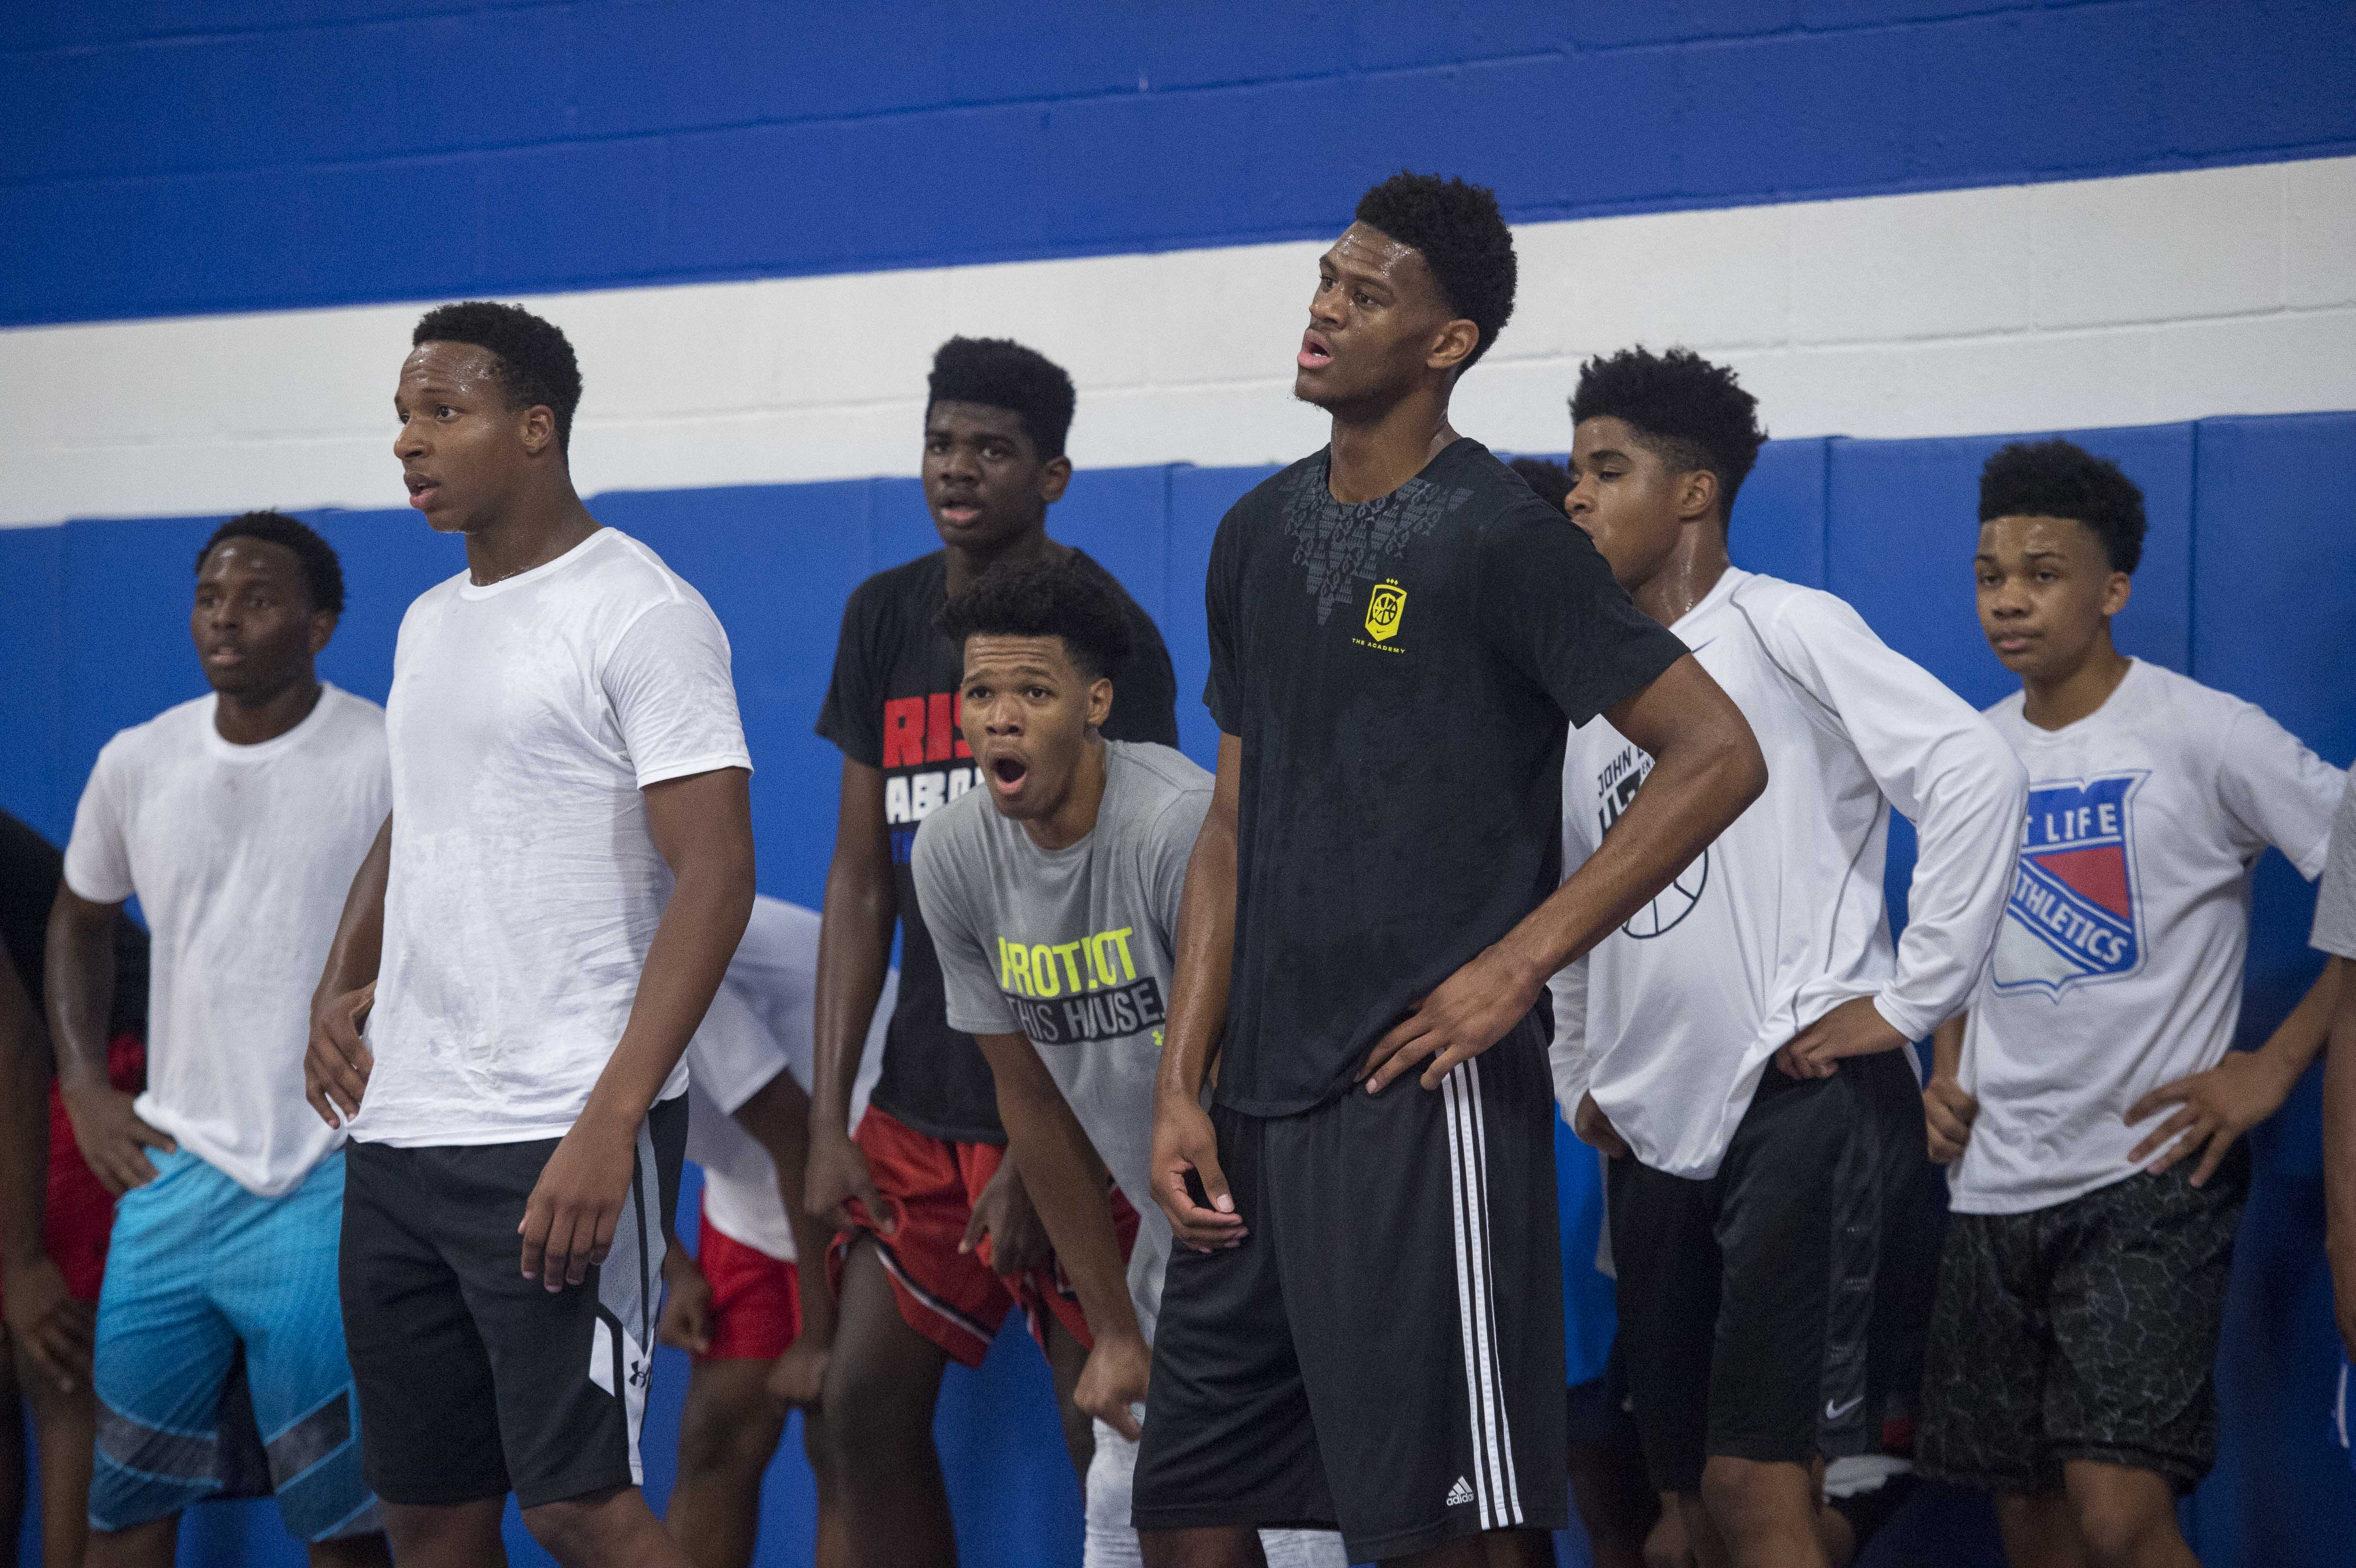 Advance Preparatory International small forward Mark Vital (left) and point guard Trevon Duval (center) and power forward Billy Preston (right) during practice. (Photo by Jerome Miron, USA TODAY Sports)